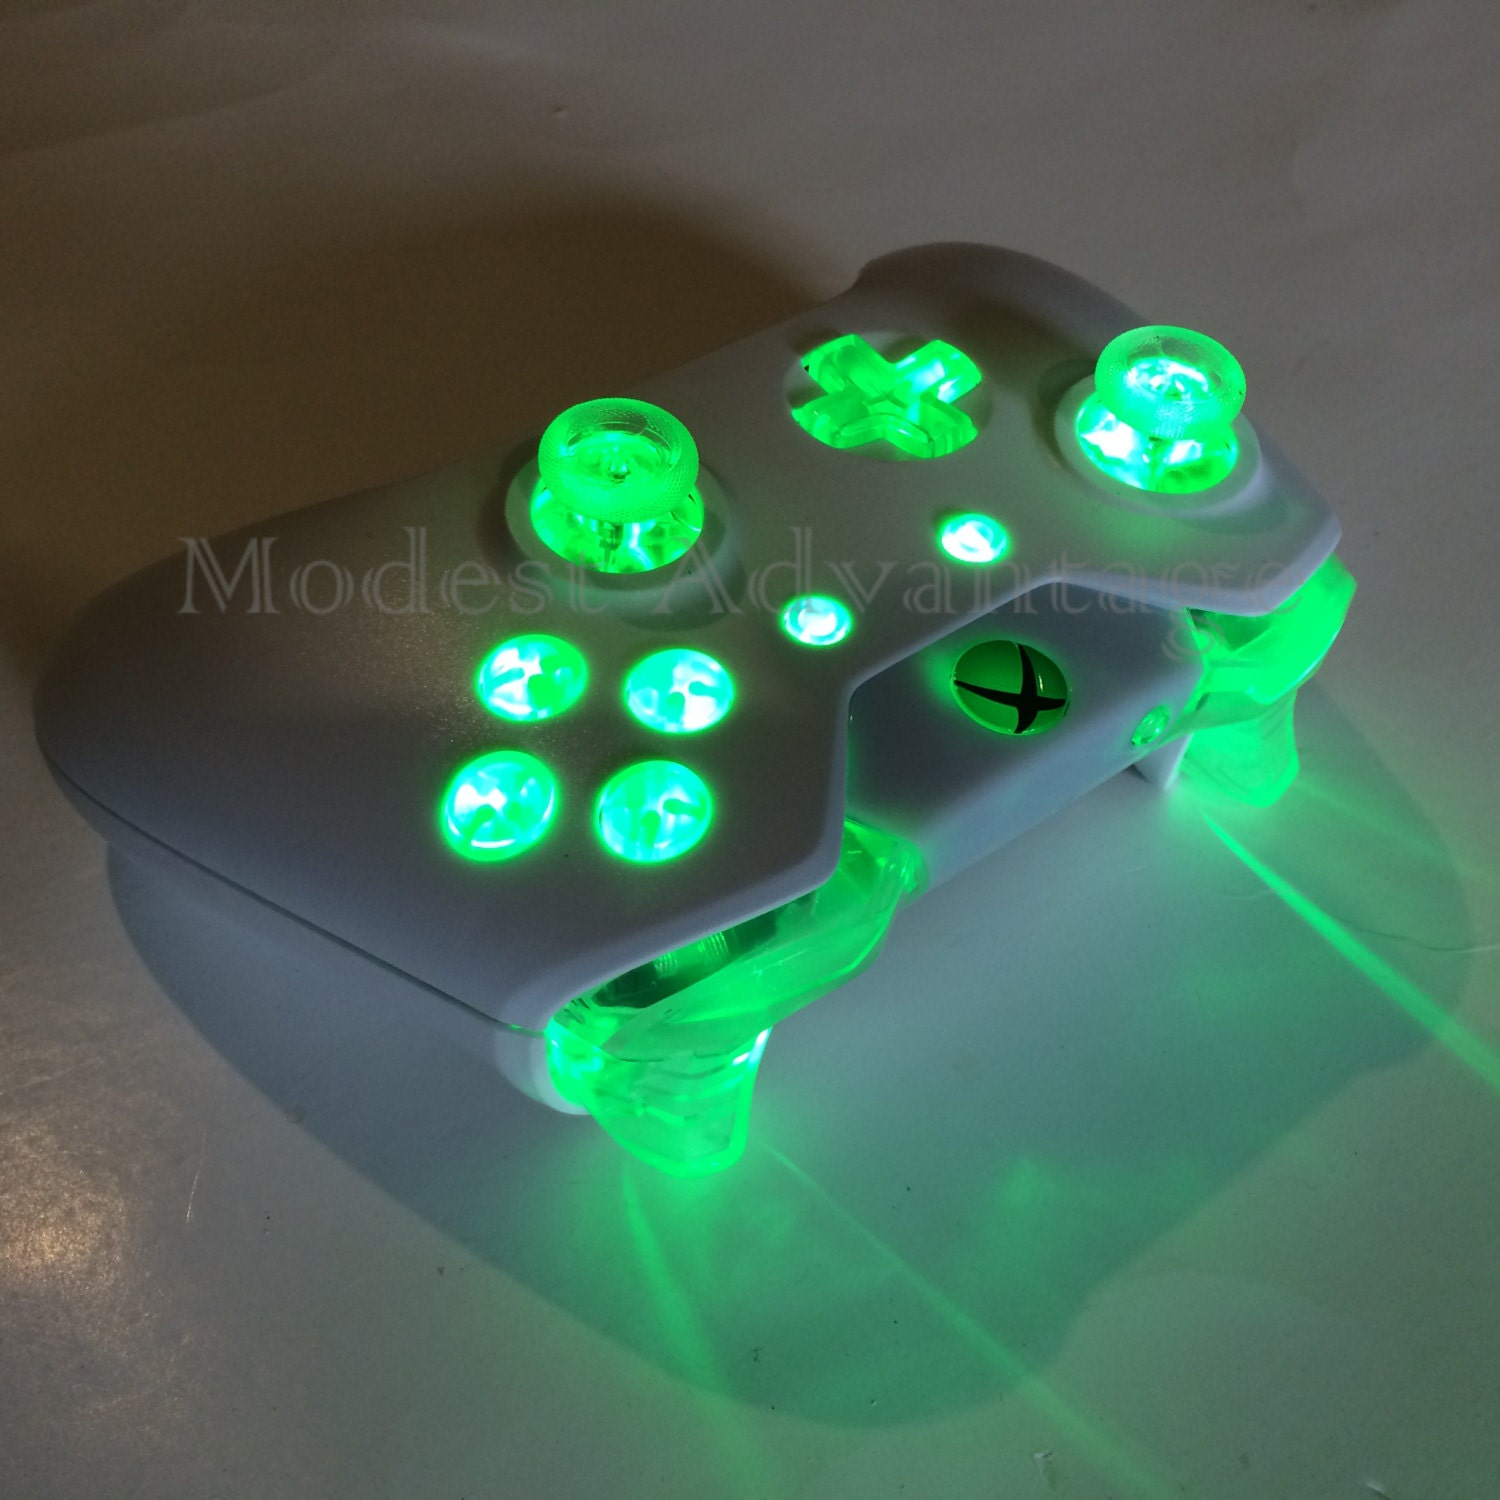 Xbox One Mods Controller Mod Rapid Fire  Turbo Cases